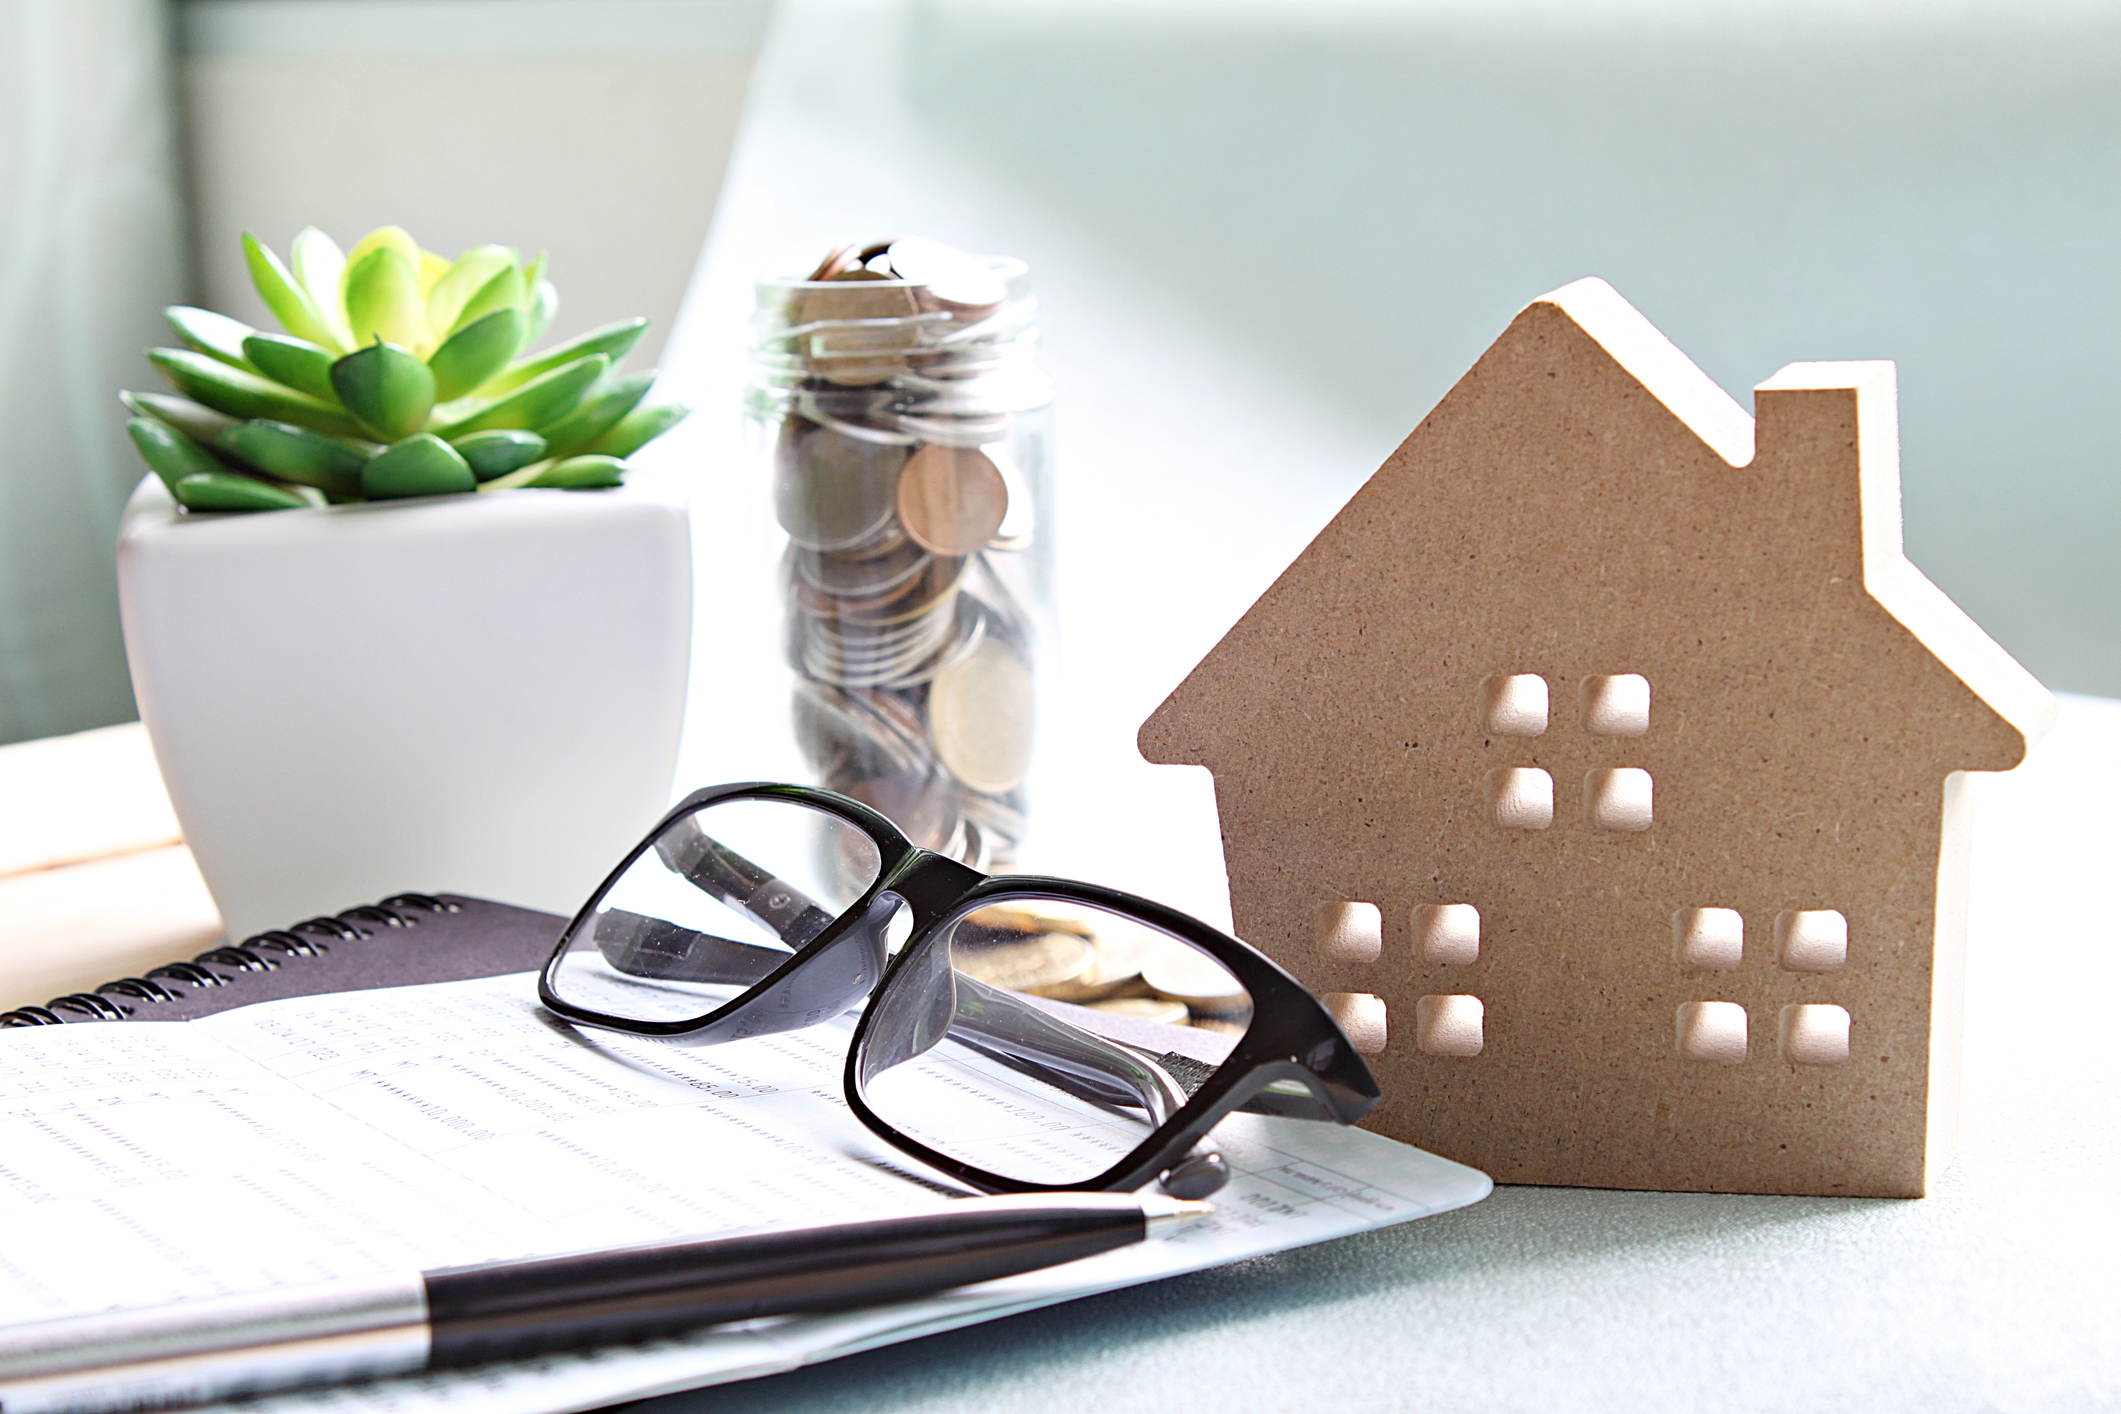 Stock Photo of a house model, eyeglasses and paperwork